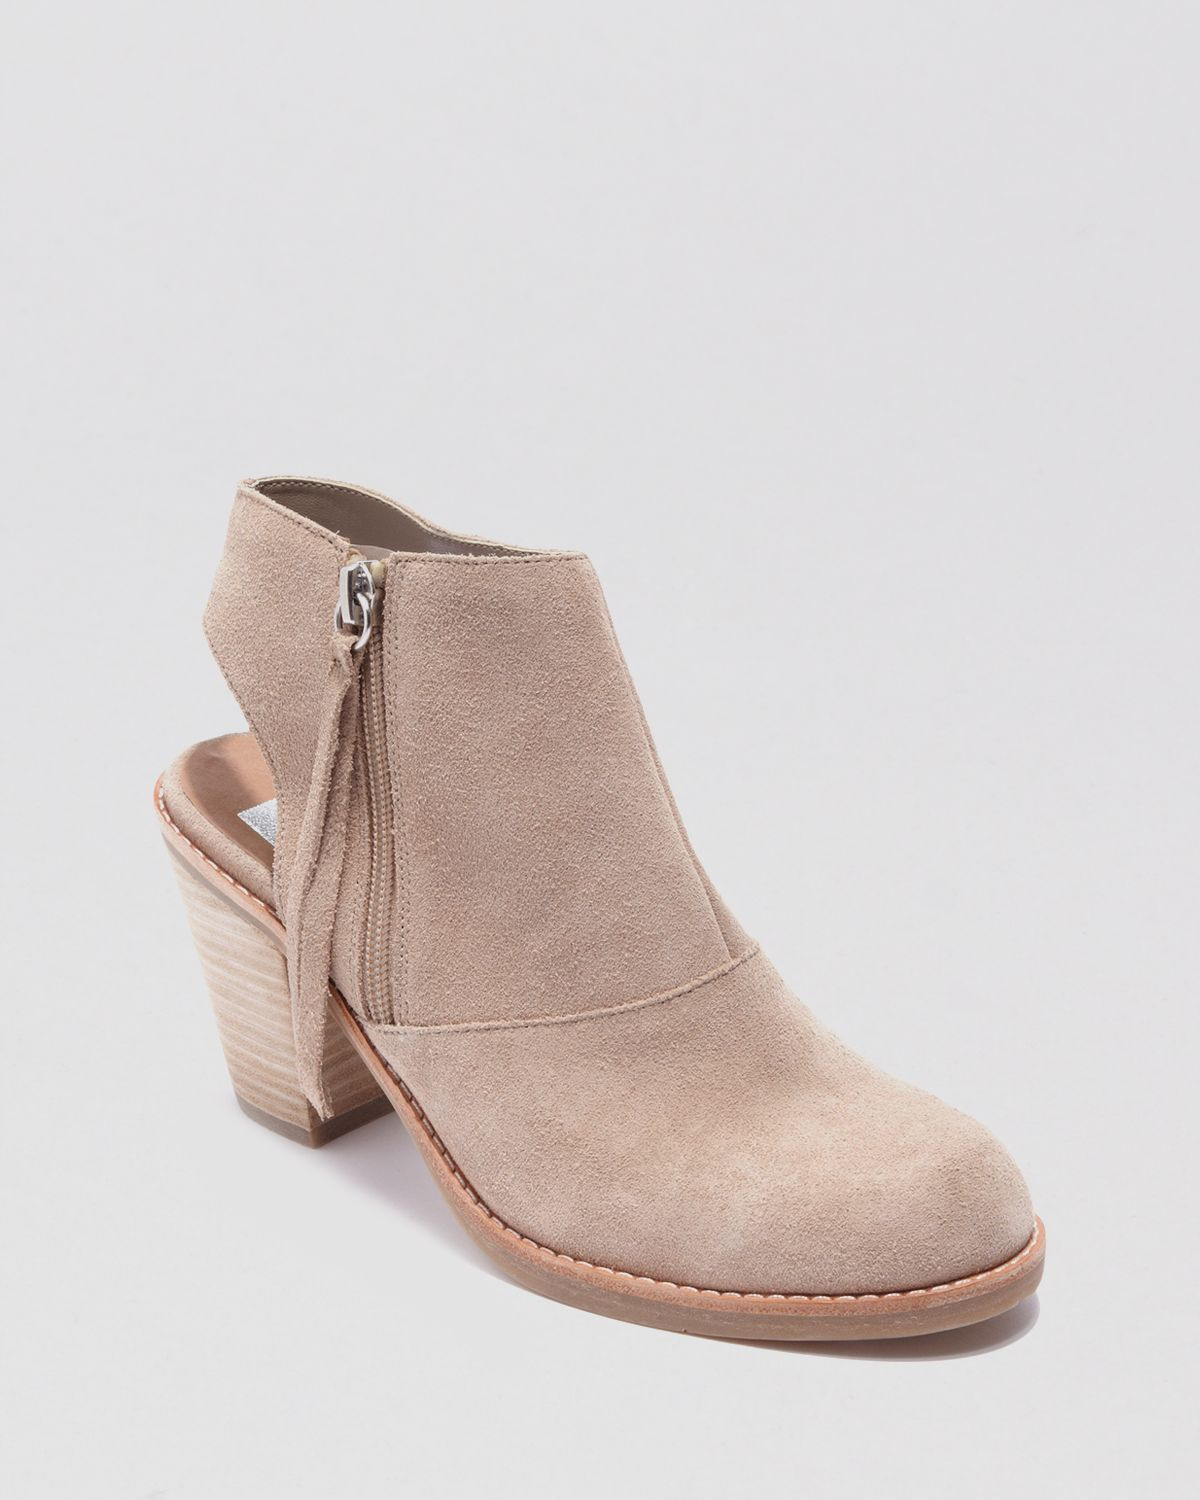 DV Dolce Vita Booties - Jentry Open High Heel | Bloomingdale's